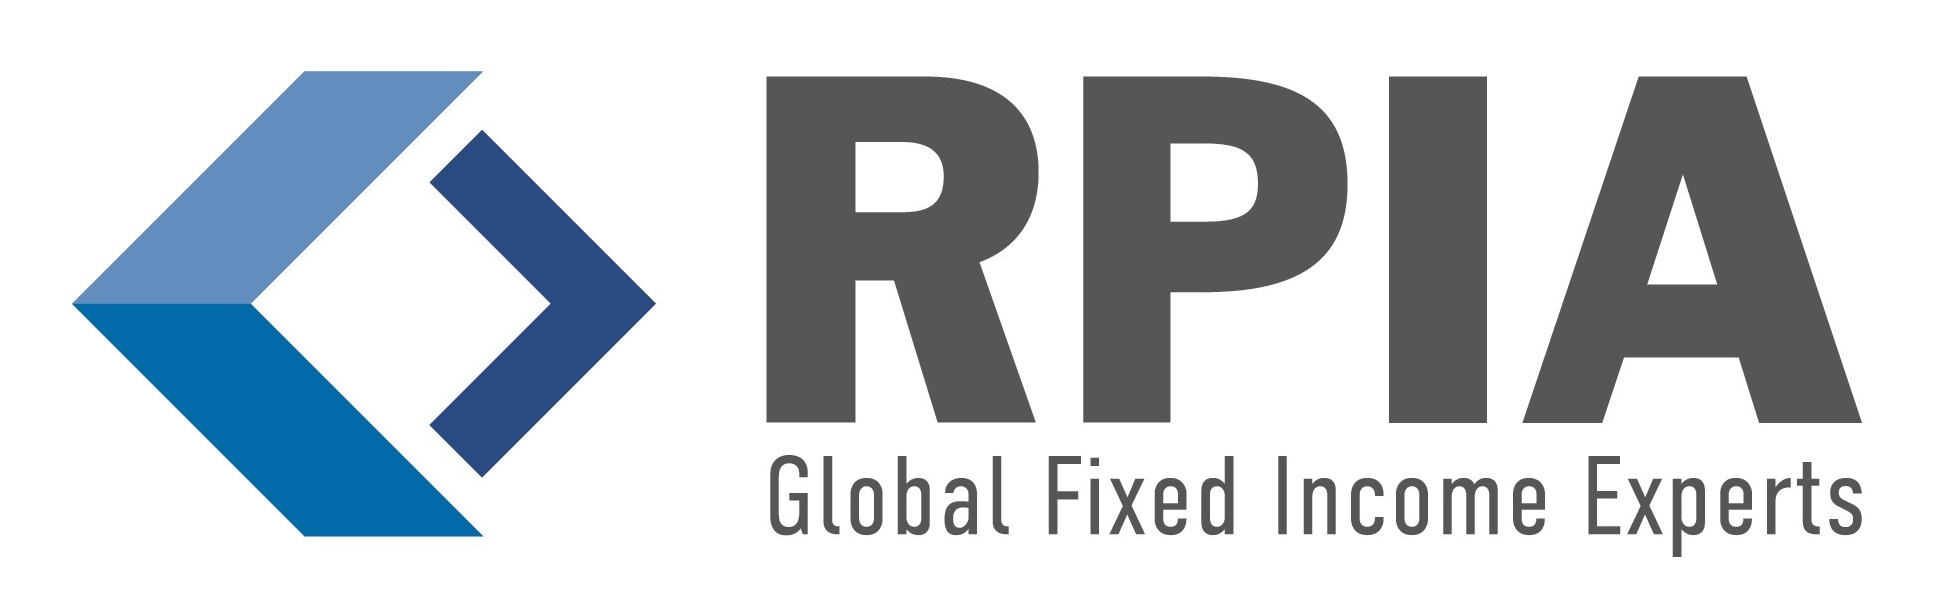 RPIA LOGO - HIGH RES.JPG